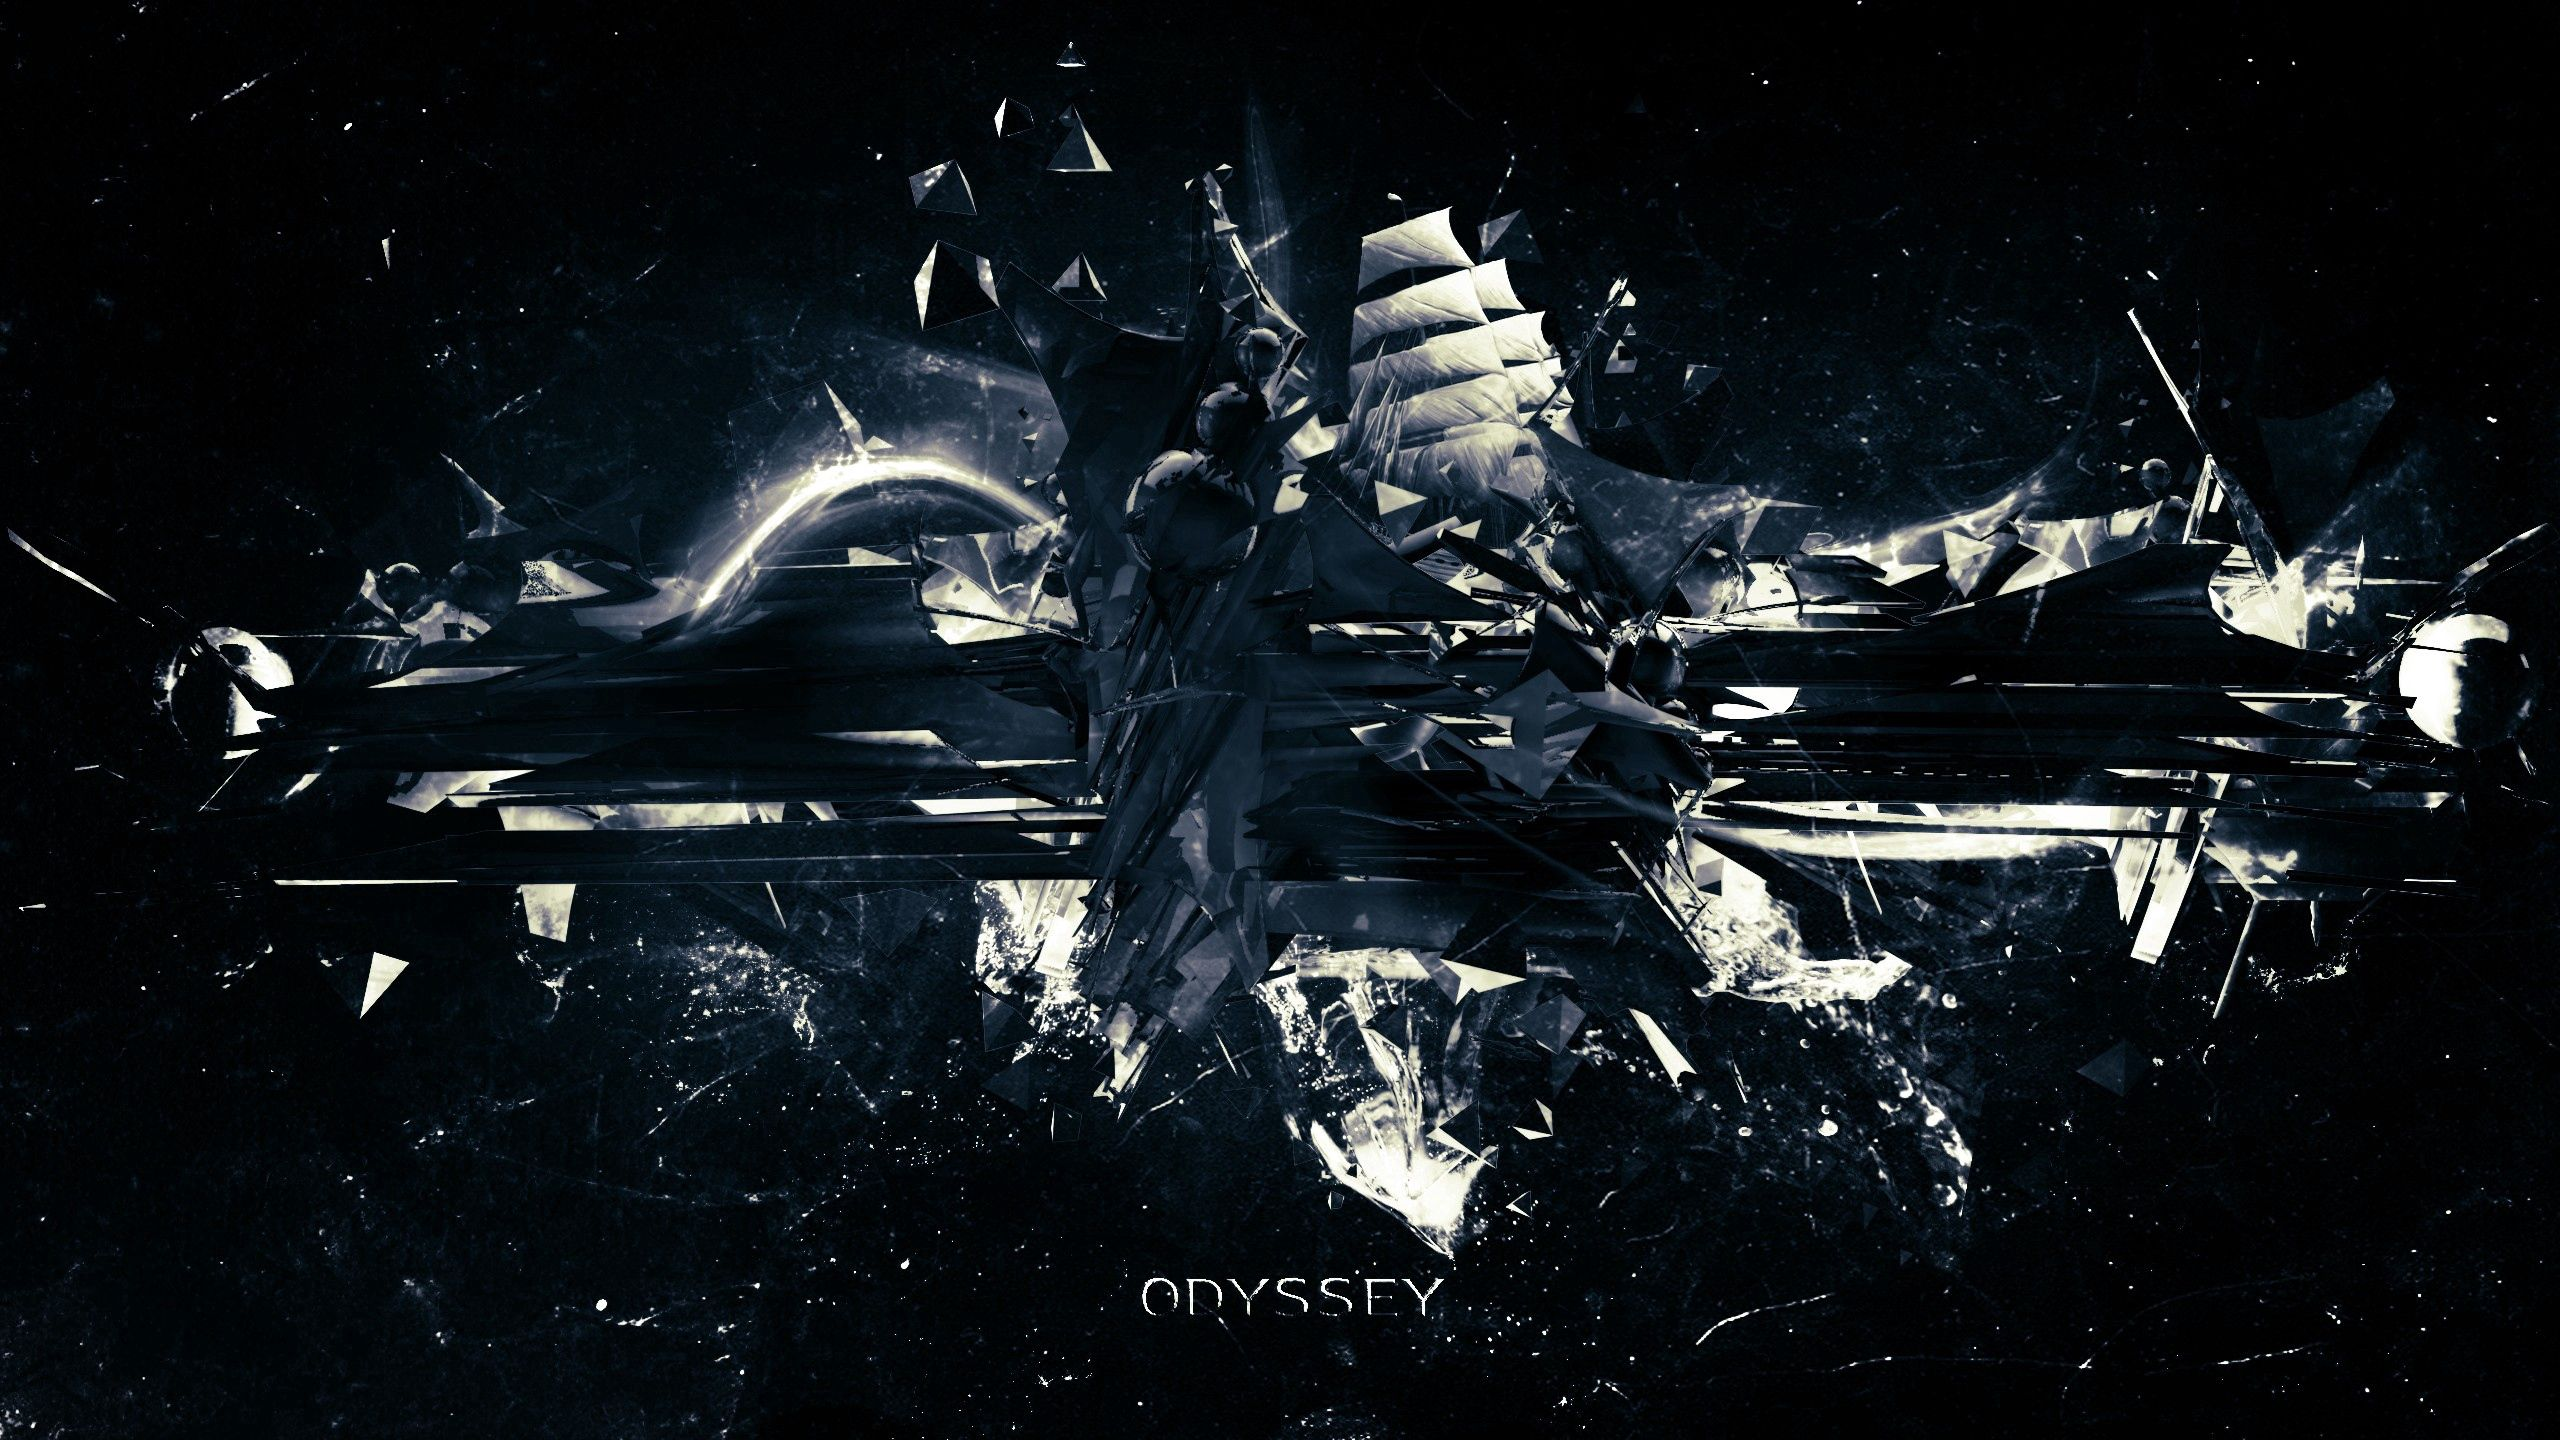 54178 download wallpaper Abstract, Explosion, Dark, Shards, Smithereens, Flight, Traffic, Movement screensavers and pictures for free